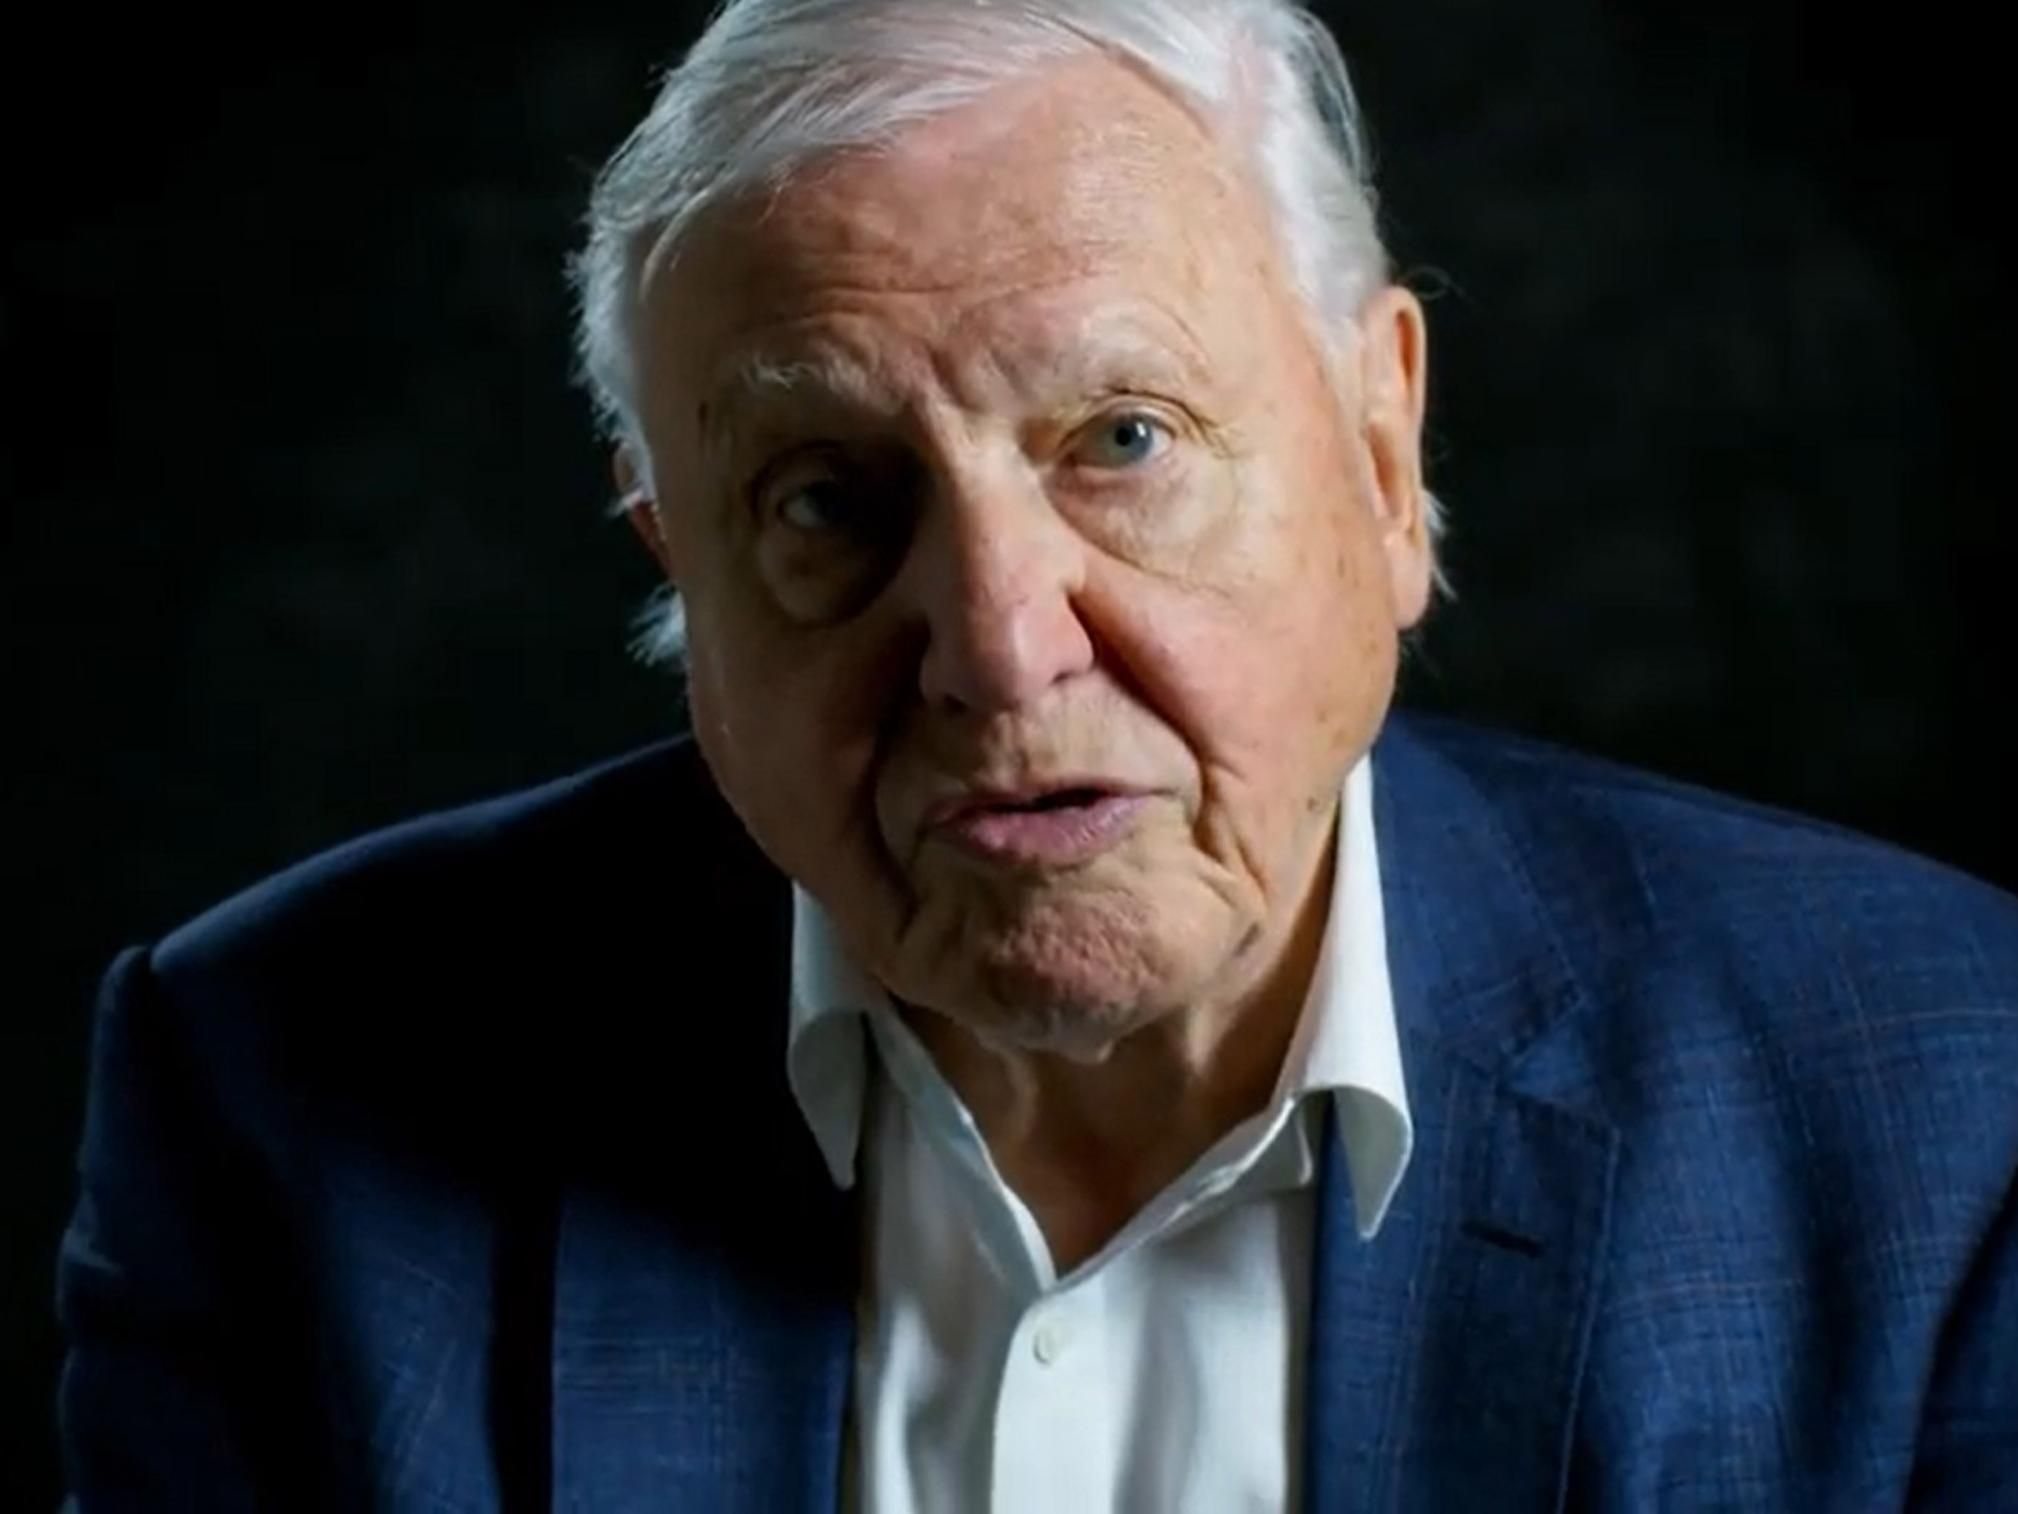 'Humans have overrun the world,' says David Attenborough in new film